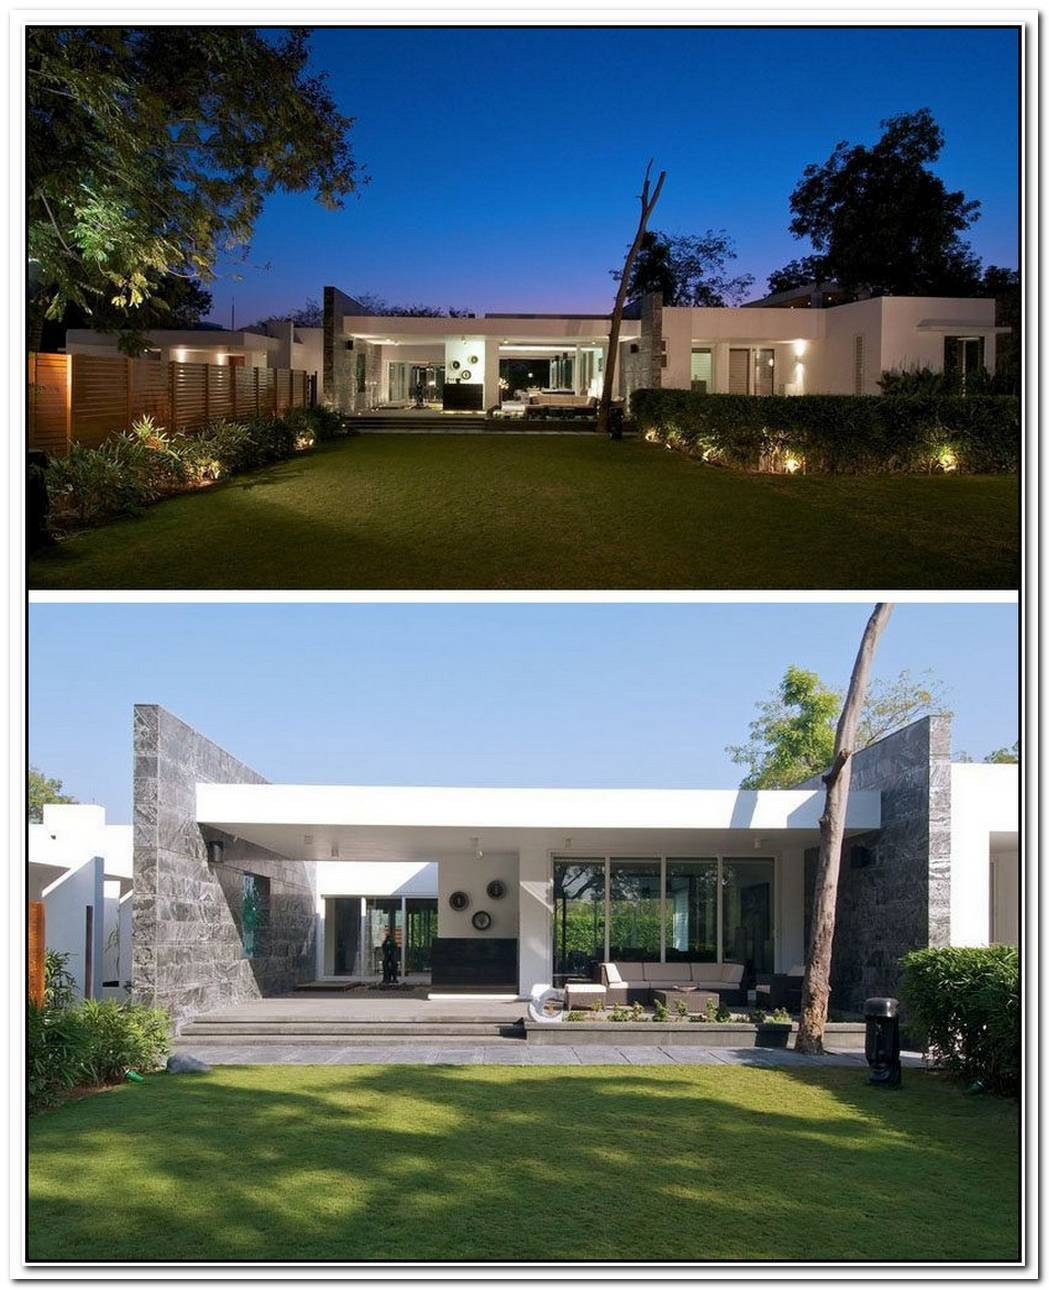 The Bright And Simple M2 House And The Amazing Views Behind It